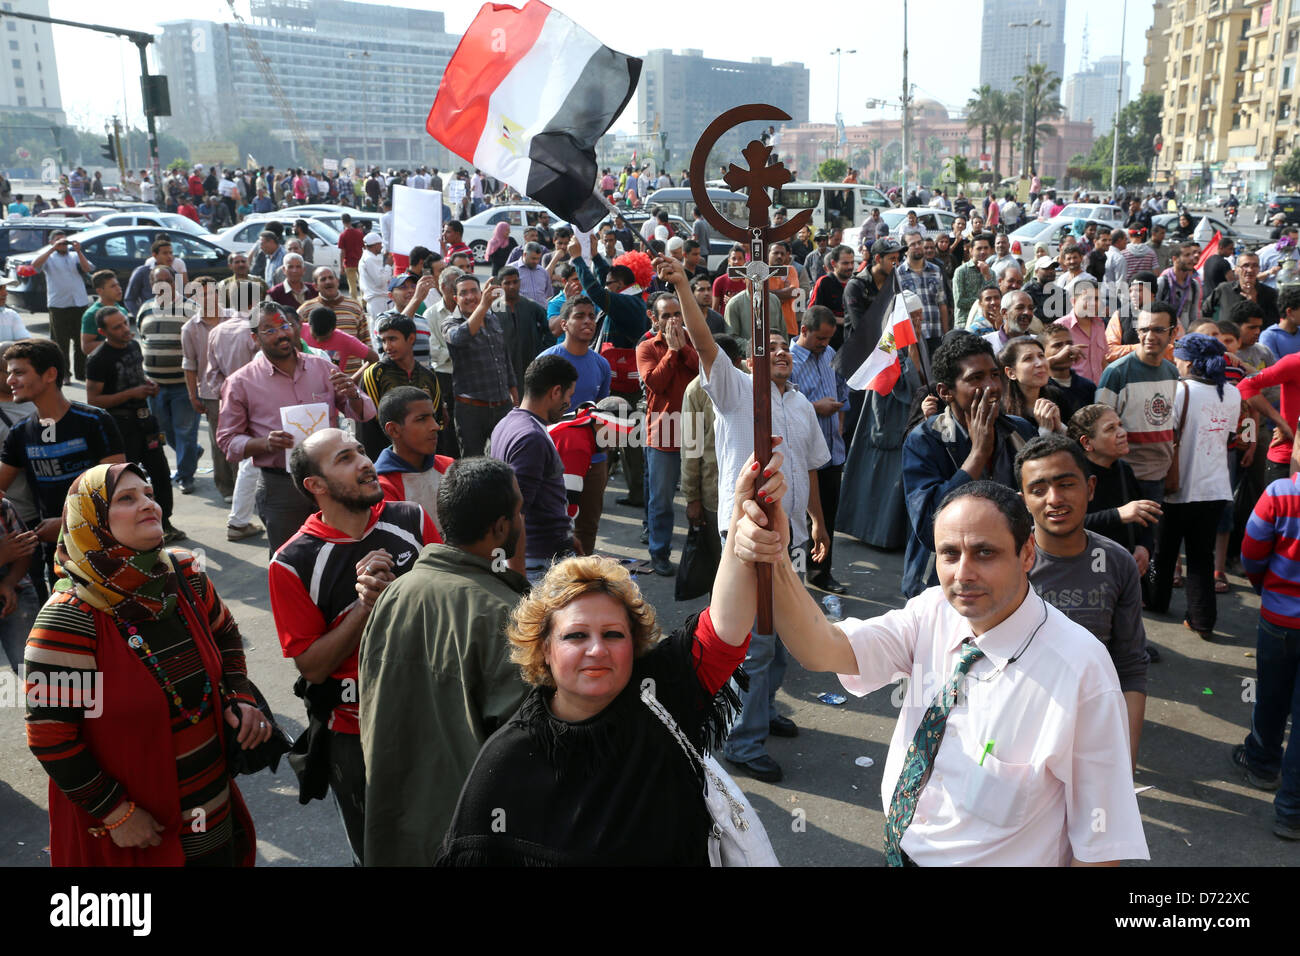 Egyptian christian couple hold a cross during a mass rally in Tahrir Square, Cairo, Egypt - Stock Image